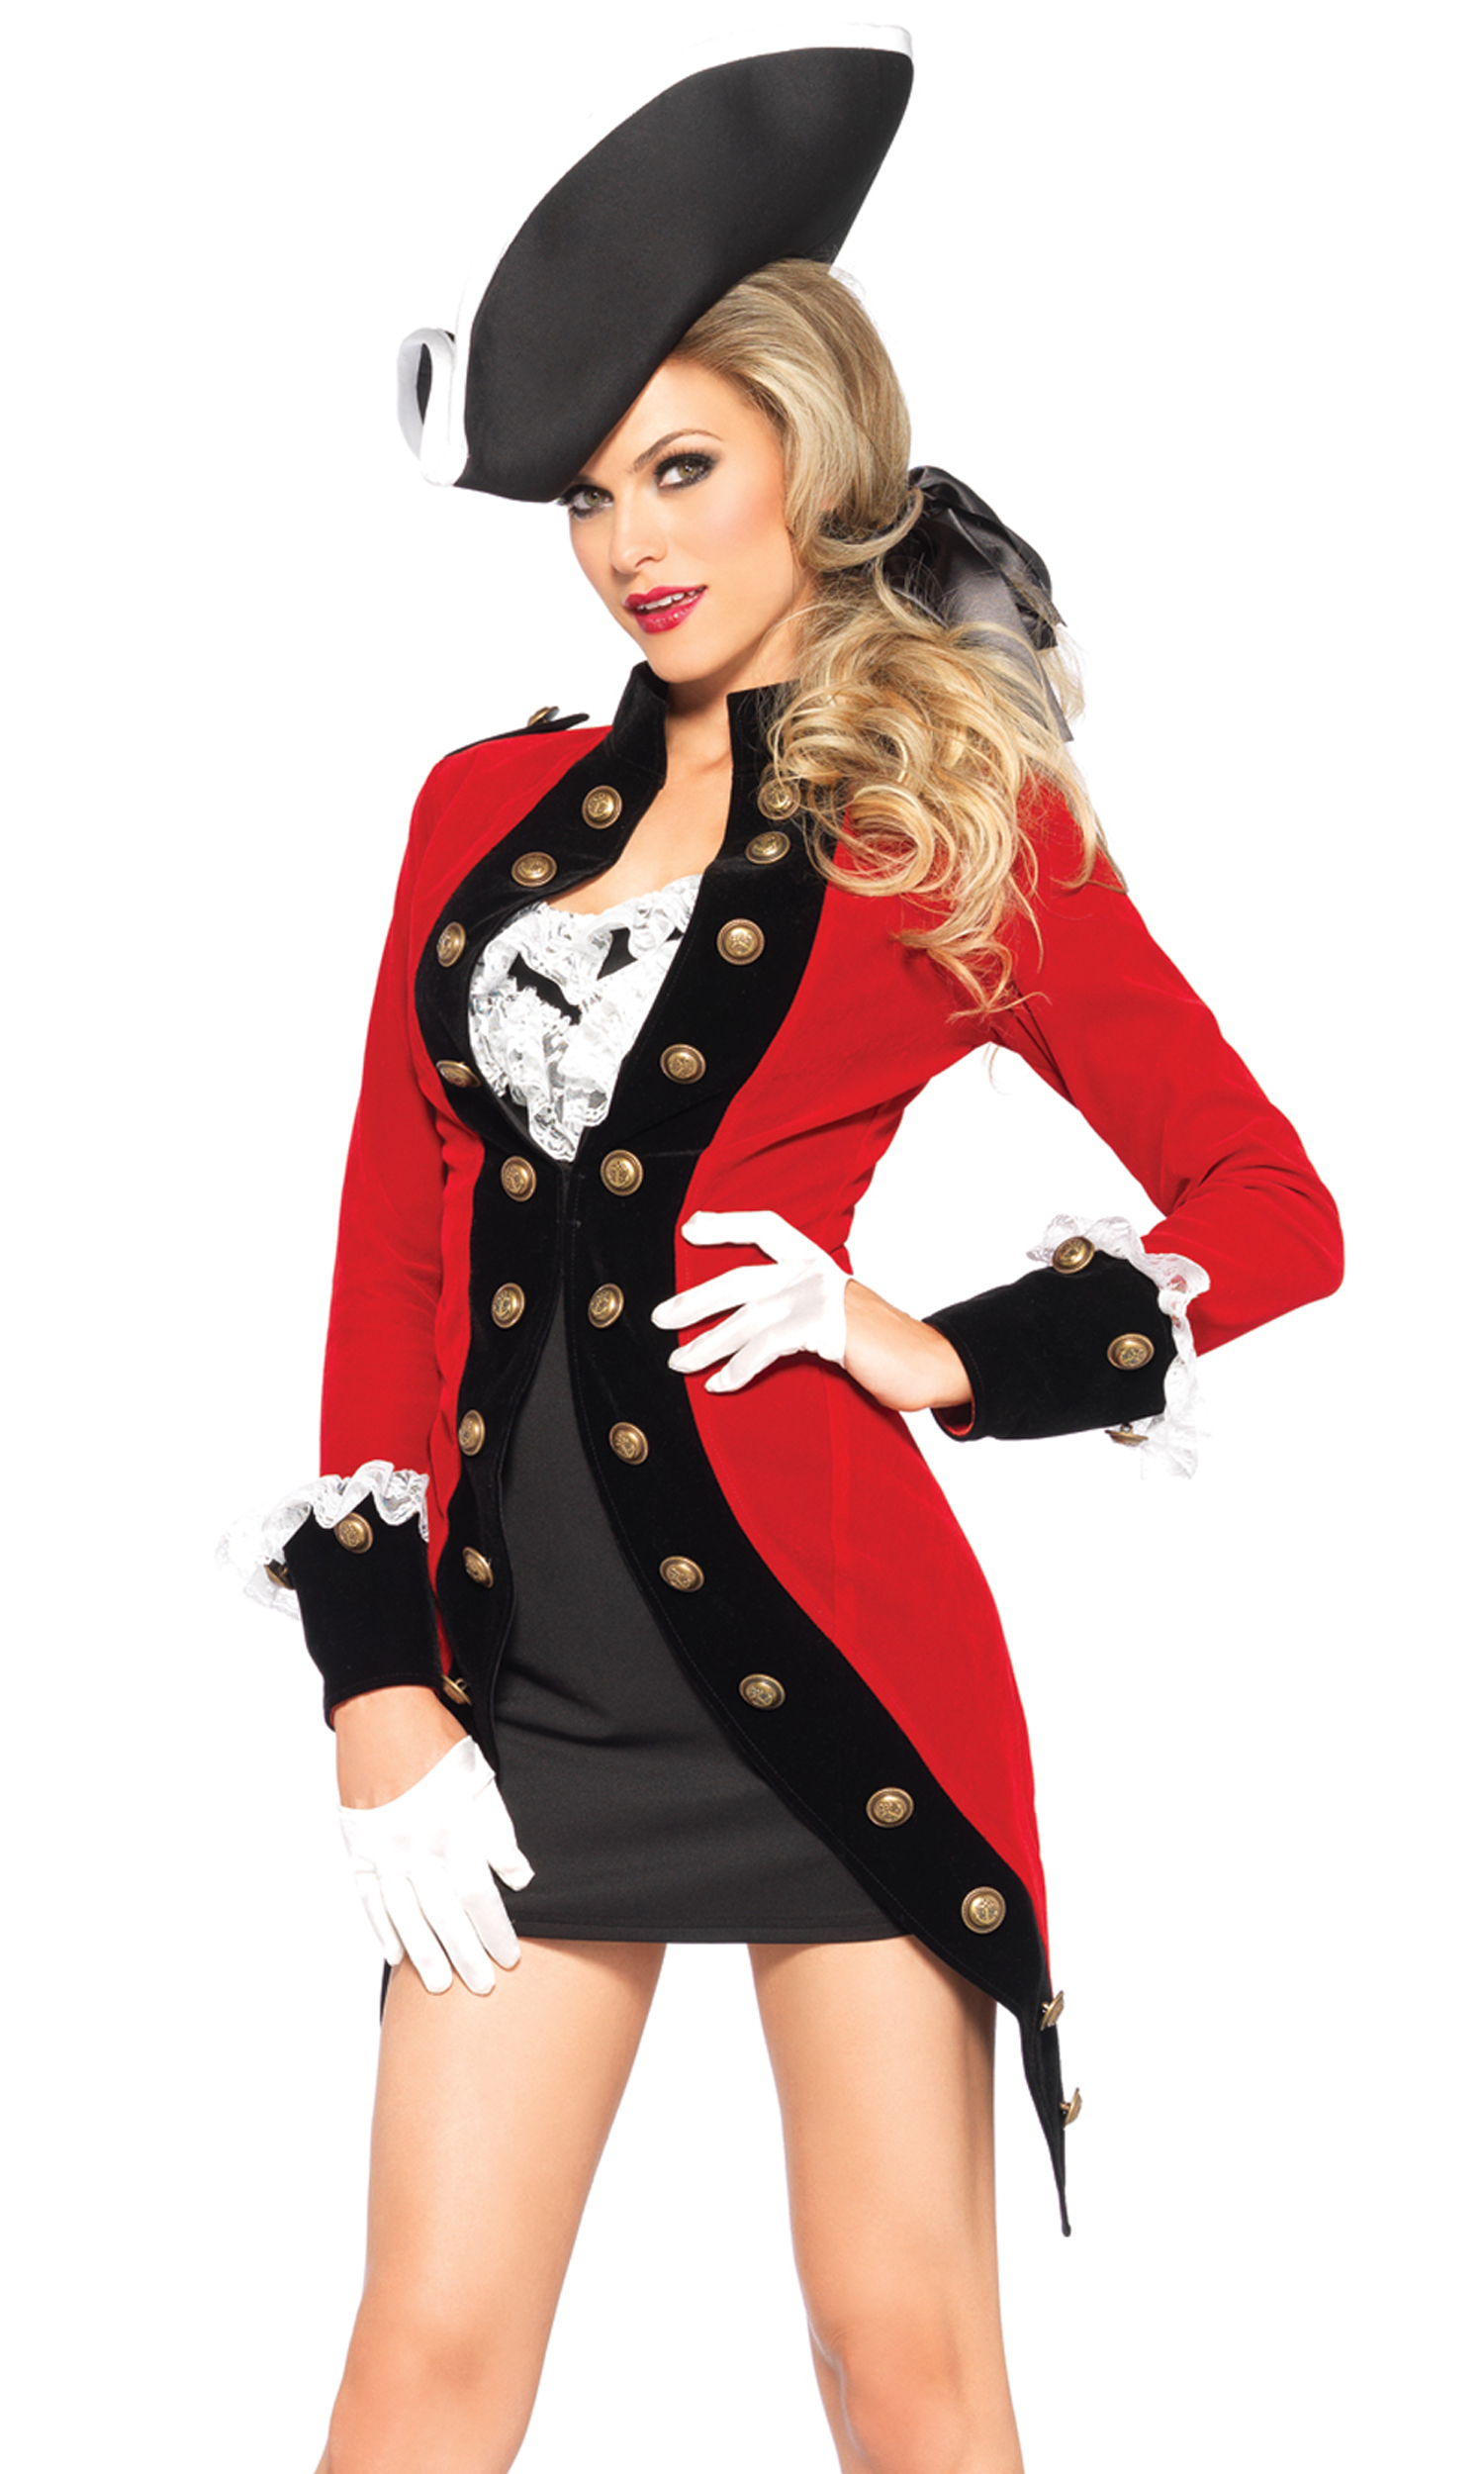 sc 1 st  ForPlay Catalog & Sexy Pirate Costumes - Pirate Costumes for Women